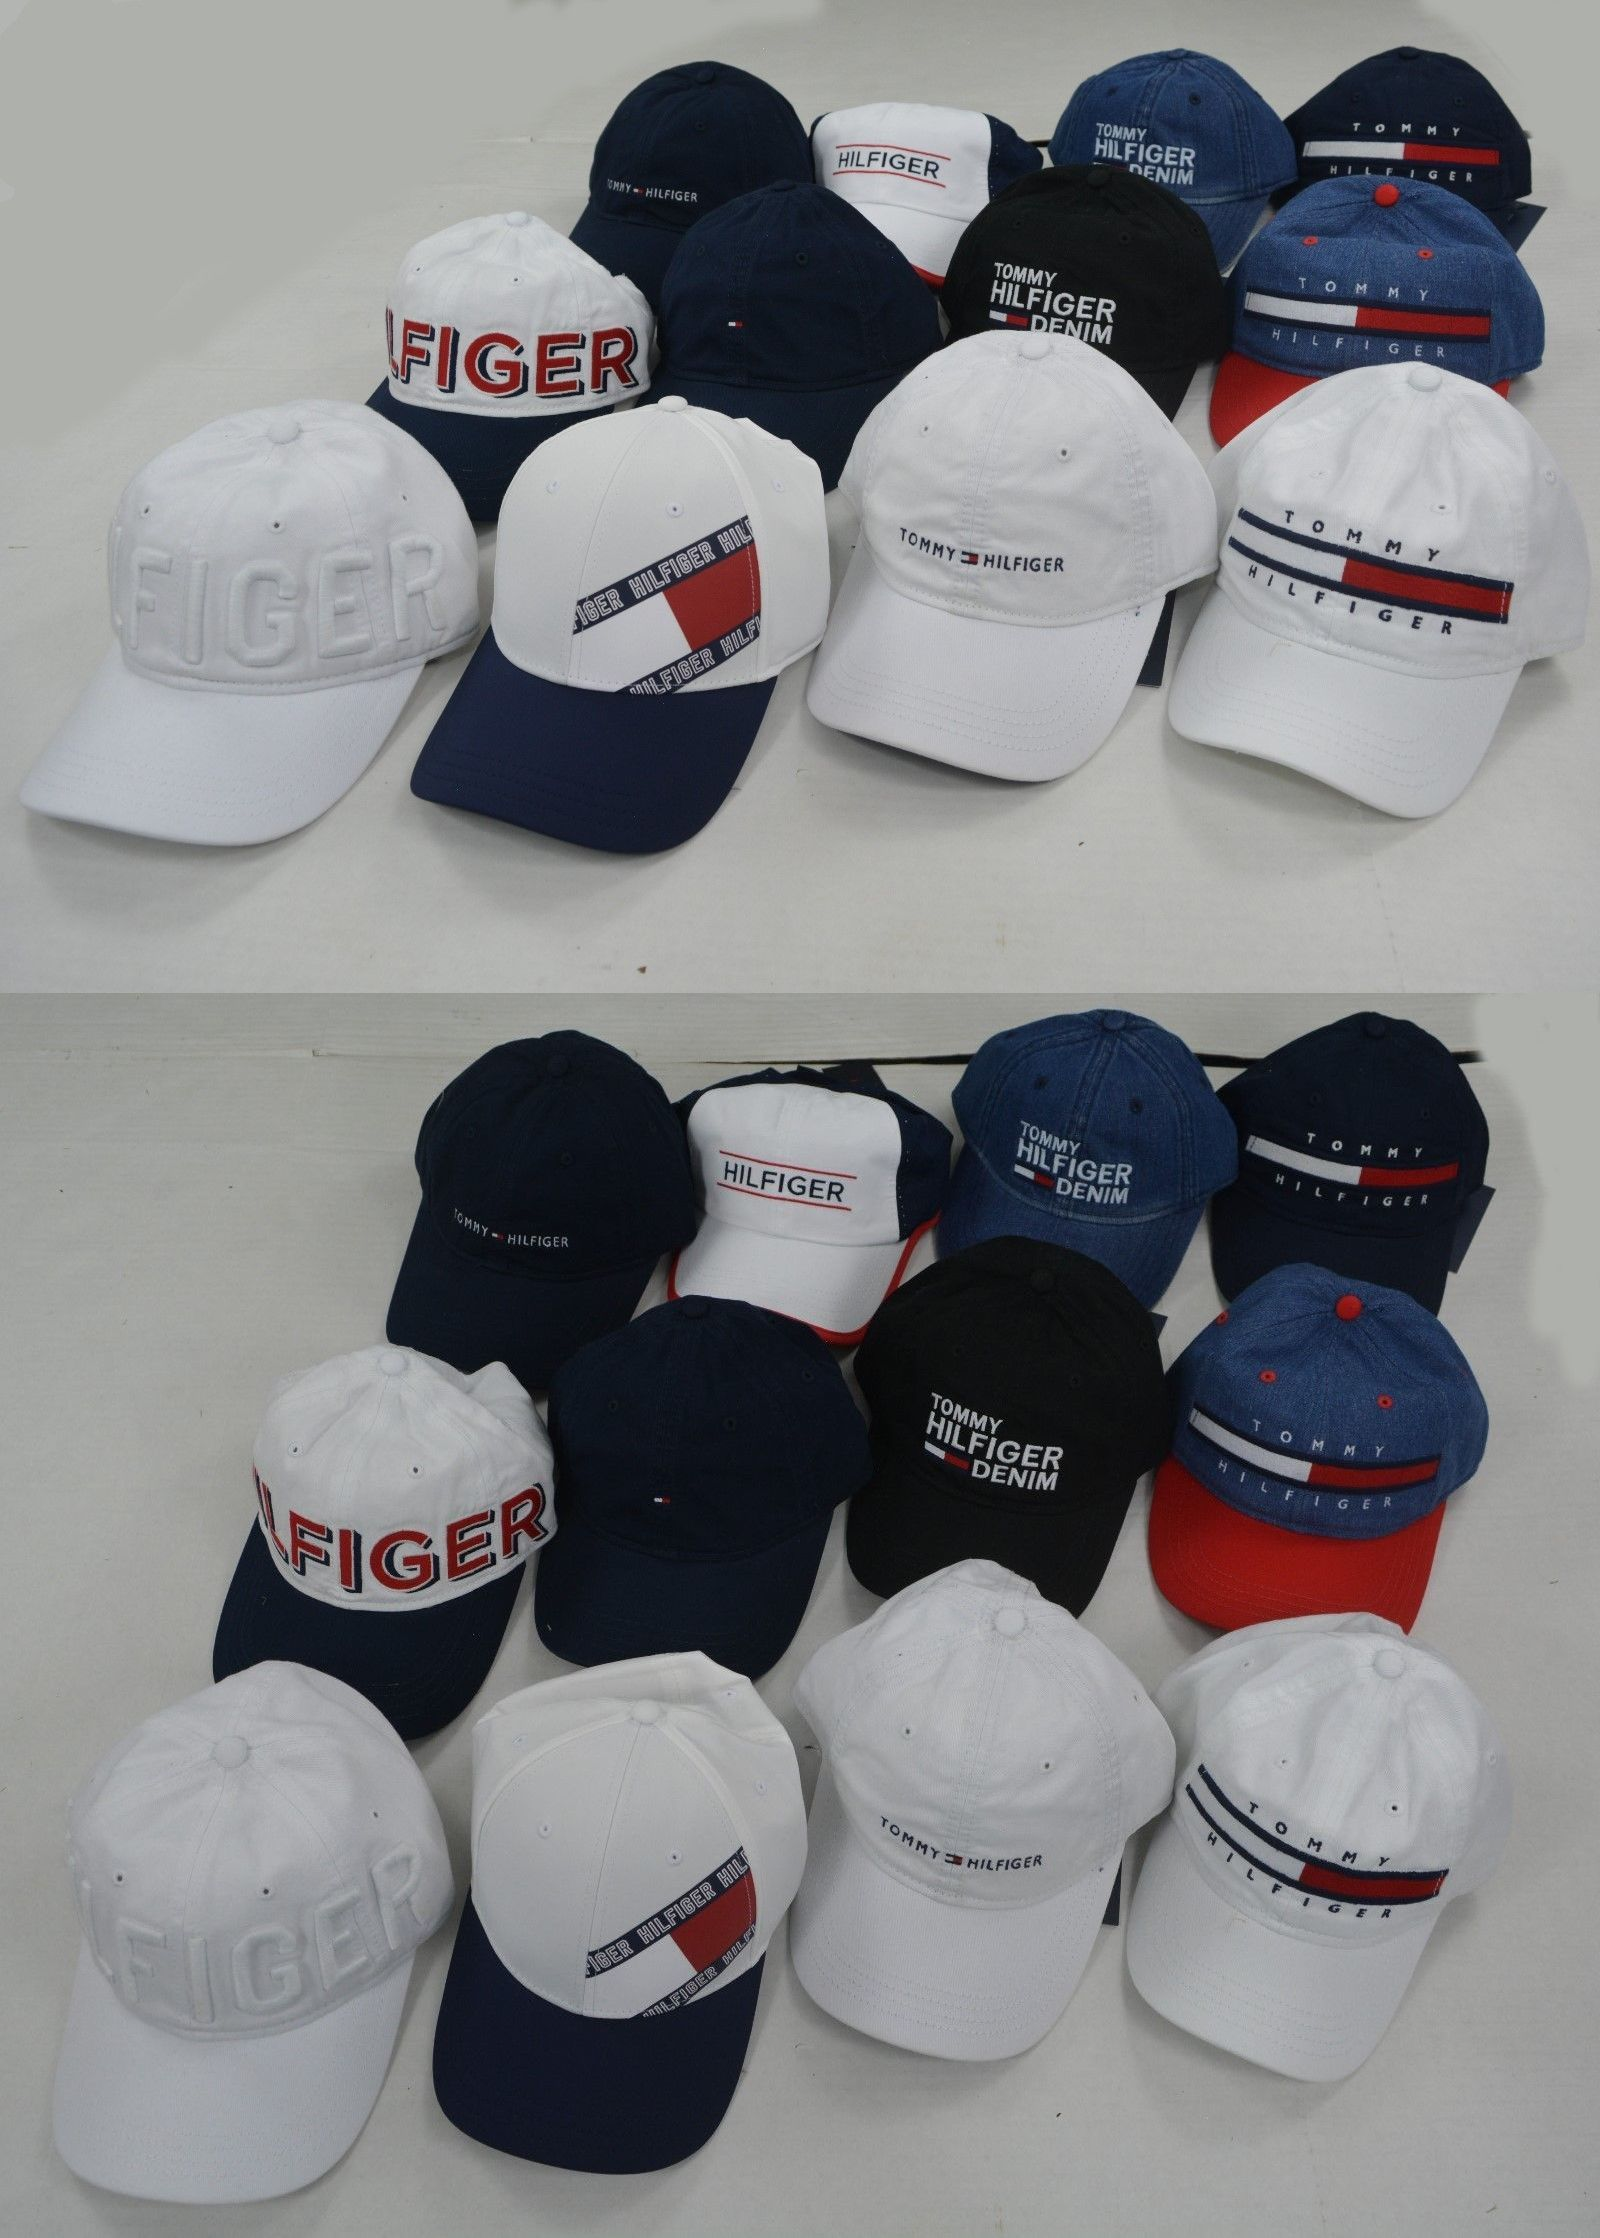 Hats 52365  Nwt Tommy Hilfiger Cotton Baseball Cap Men Women Unisex Hat One  Size Adjustable -  BUY IT NOW ONLY   23.5 on  eBay  tommy  hilfiger  cotton  ... d025dcb153d8